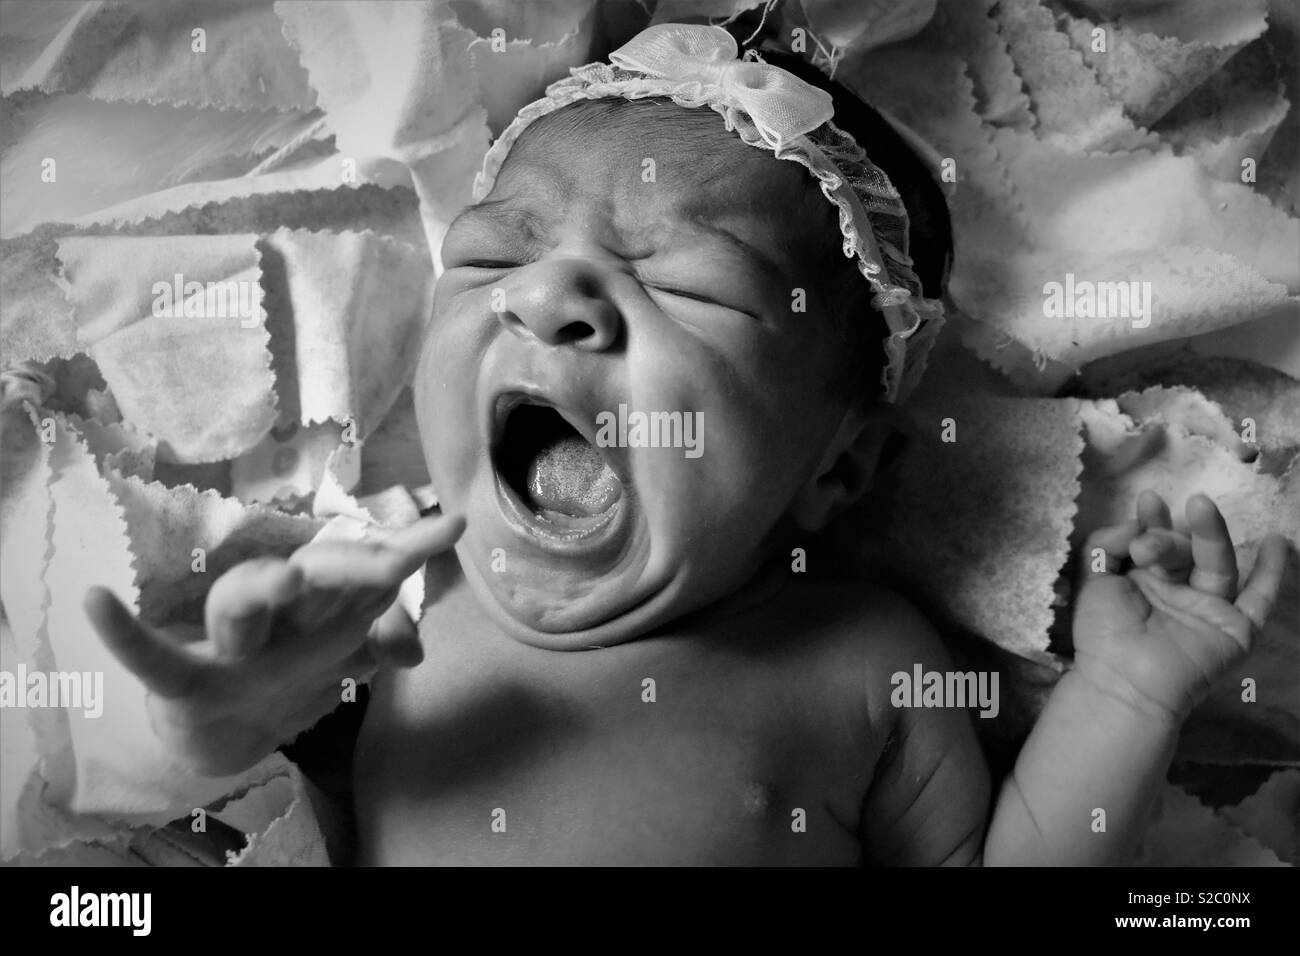 Sleepy baby Stockbild